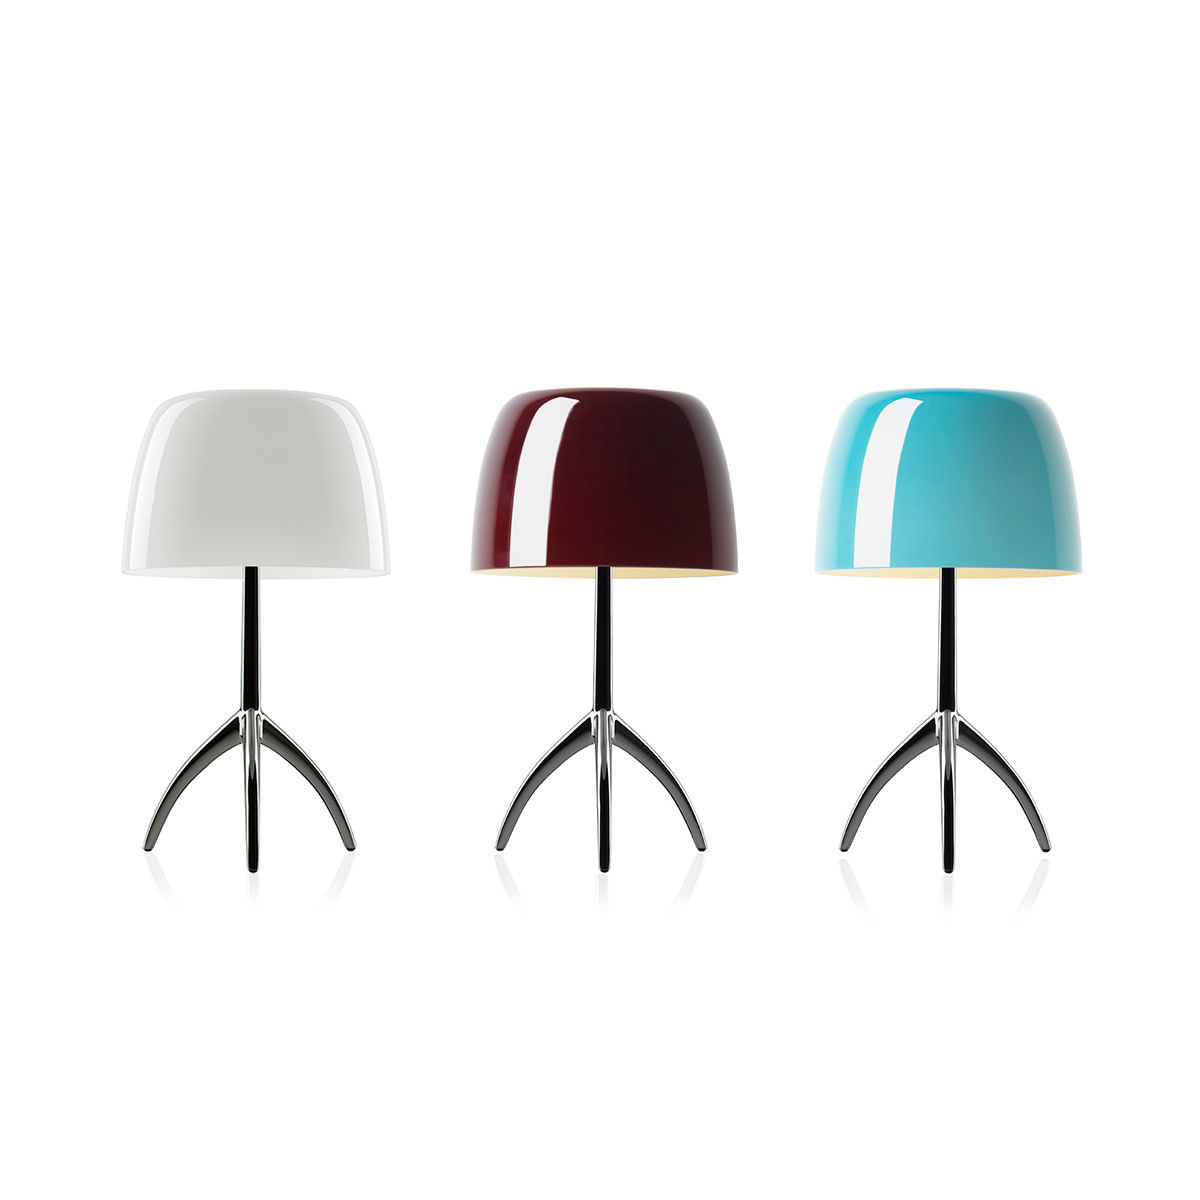 Foscarini Lumiere Piccola Table Lamp 20cm 布丁系列 玻璃 桌燈 - 小尺寸